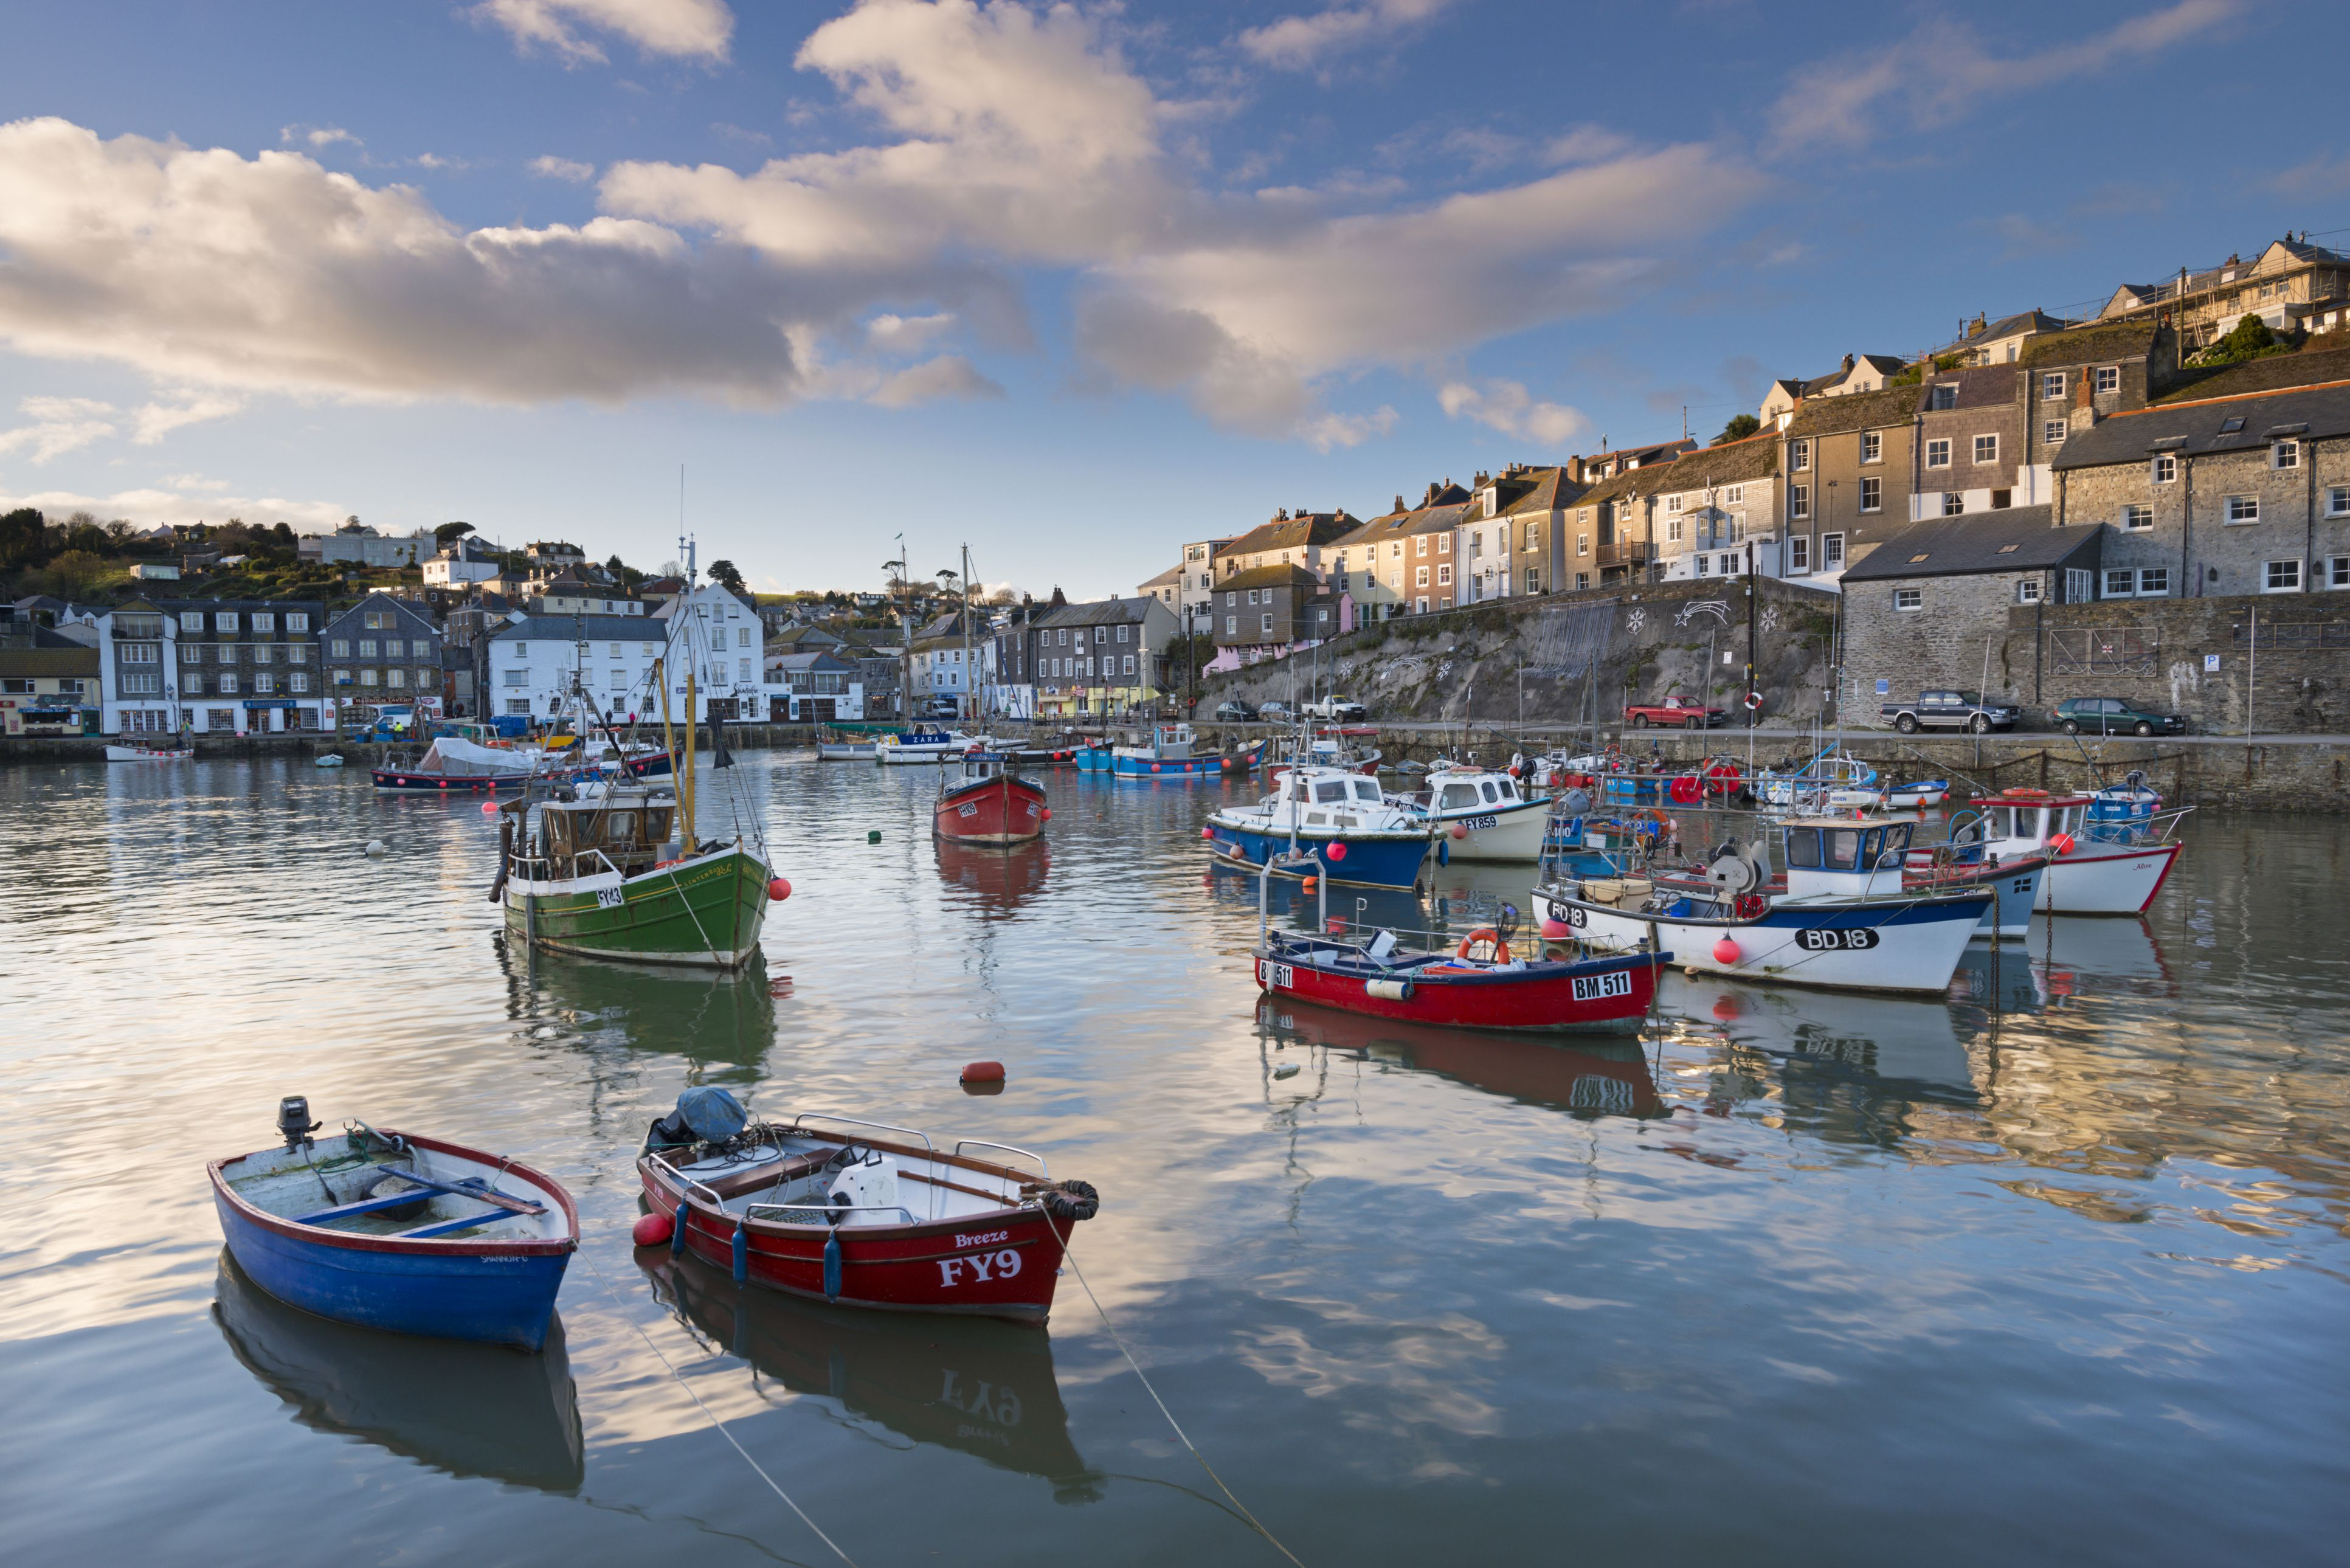 Evening in Cornwall